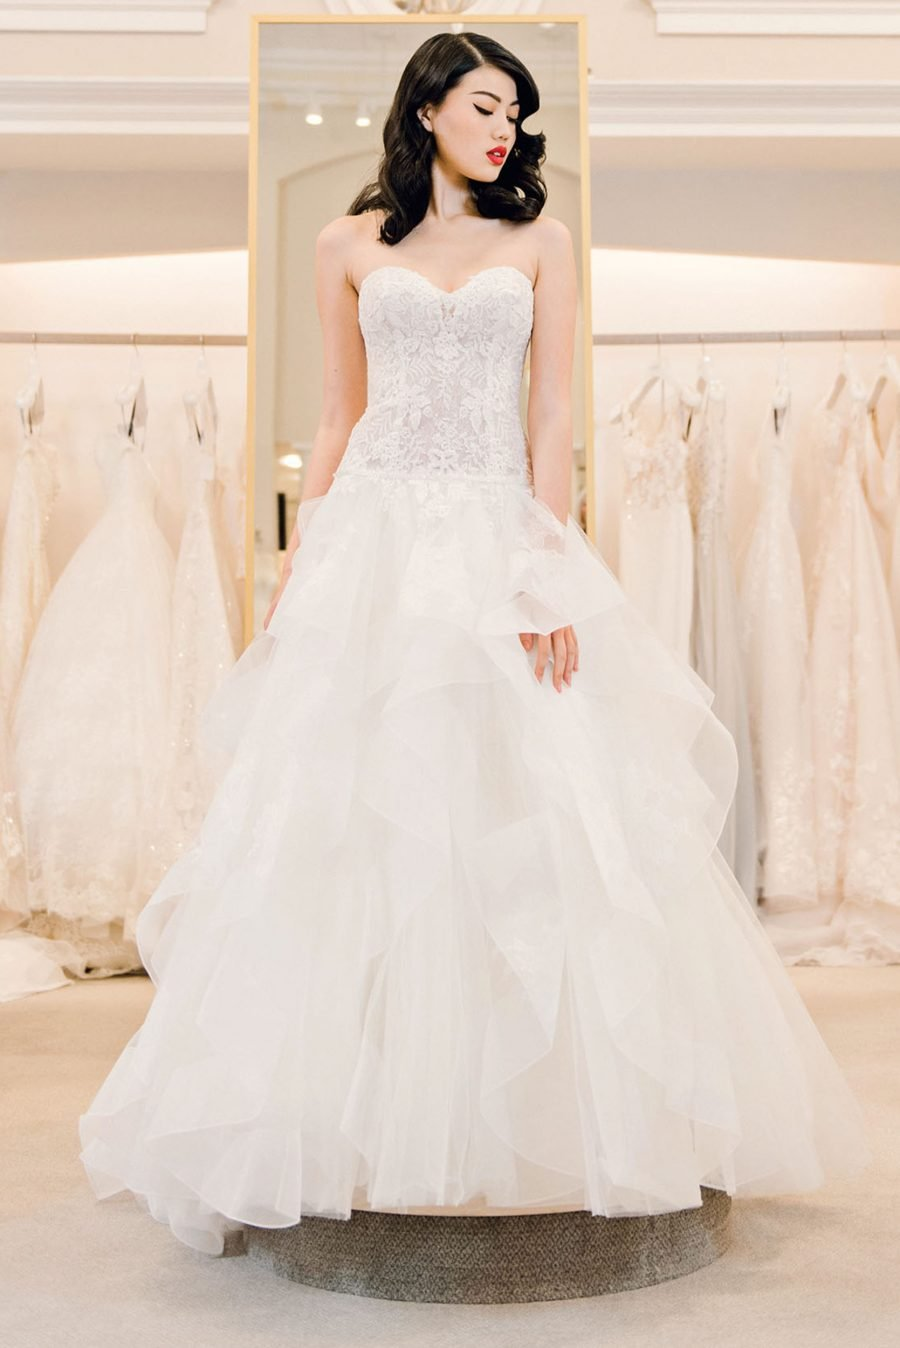 Strapless Sweetheart Lace Bodice A Line Wedding Dress With Ruffle Skirt Kleinfeld Bridal